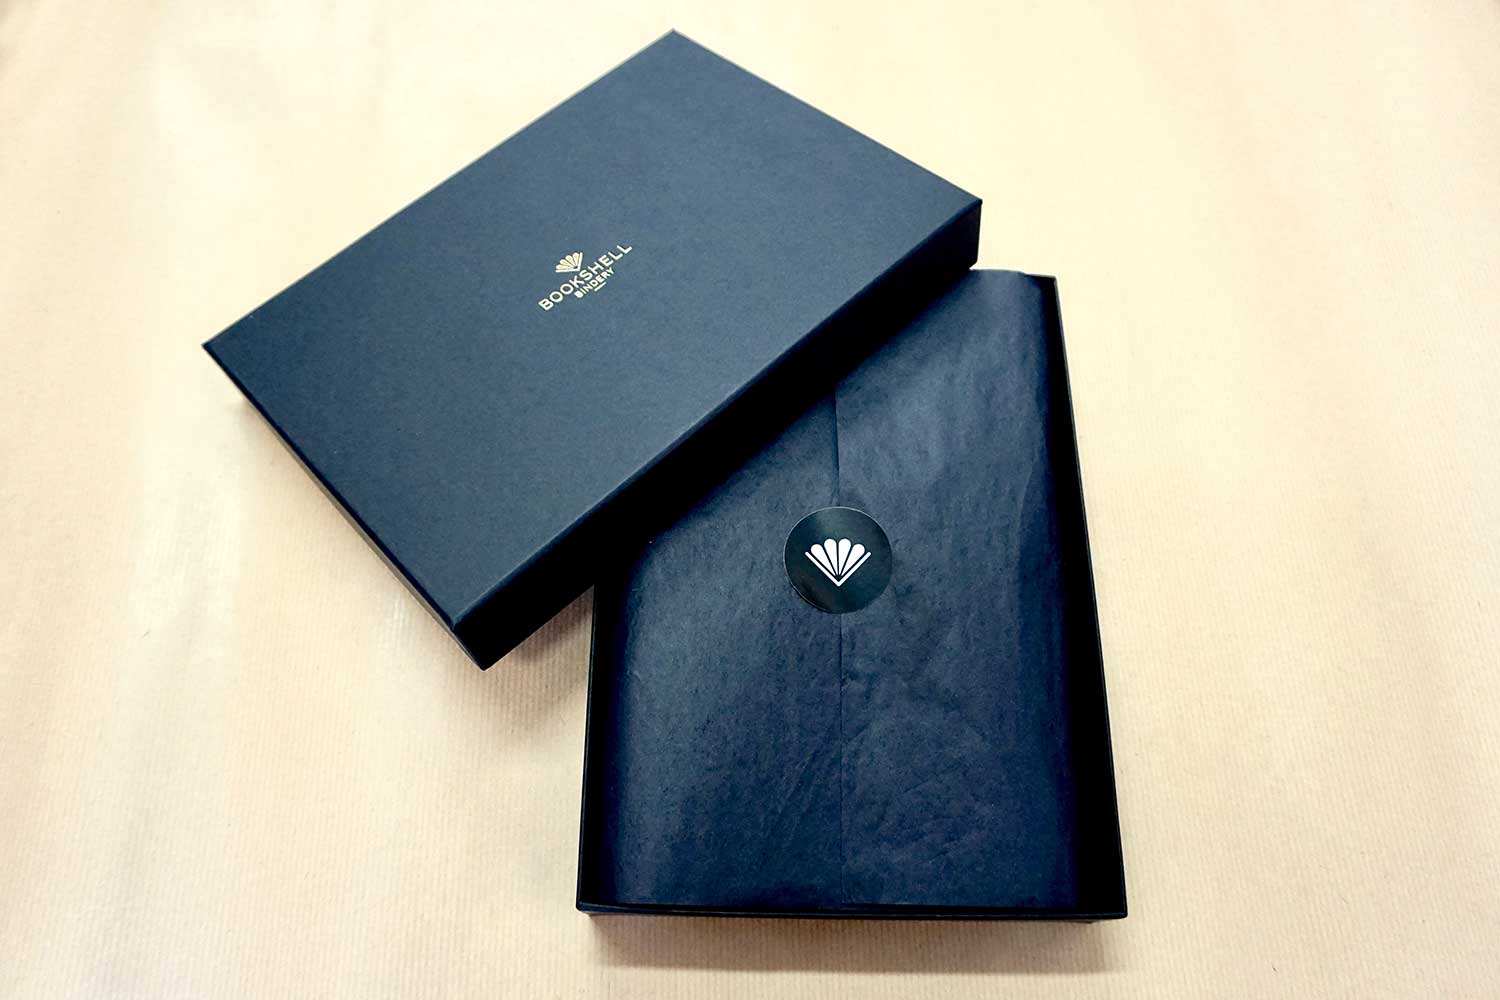 Men's journal ready to gift in beautiful packaging from Bookshell bindery